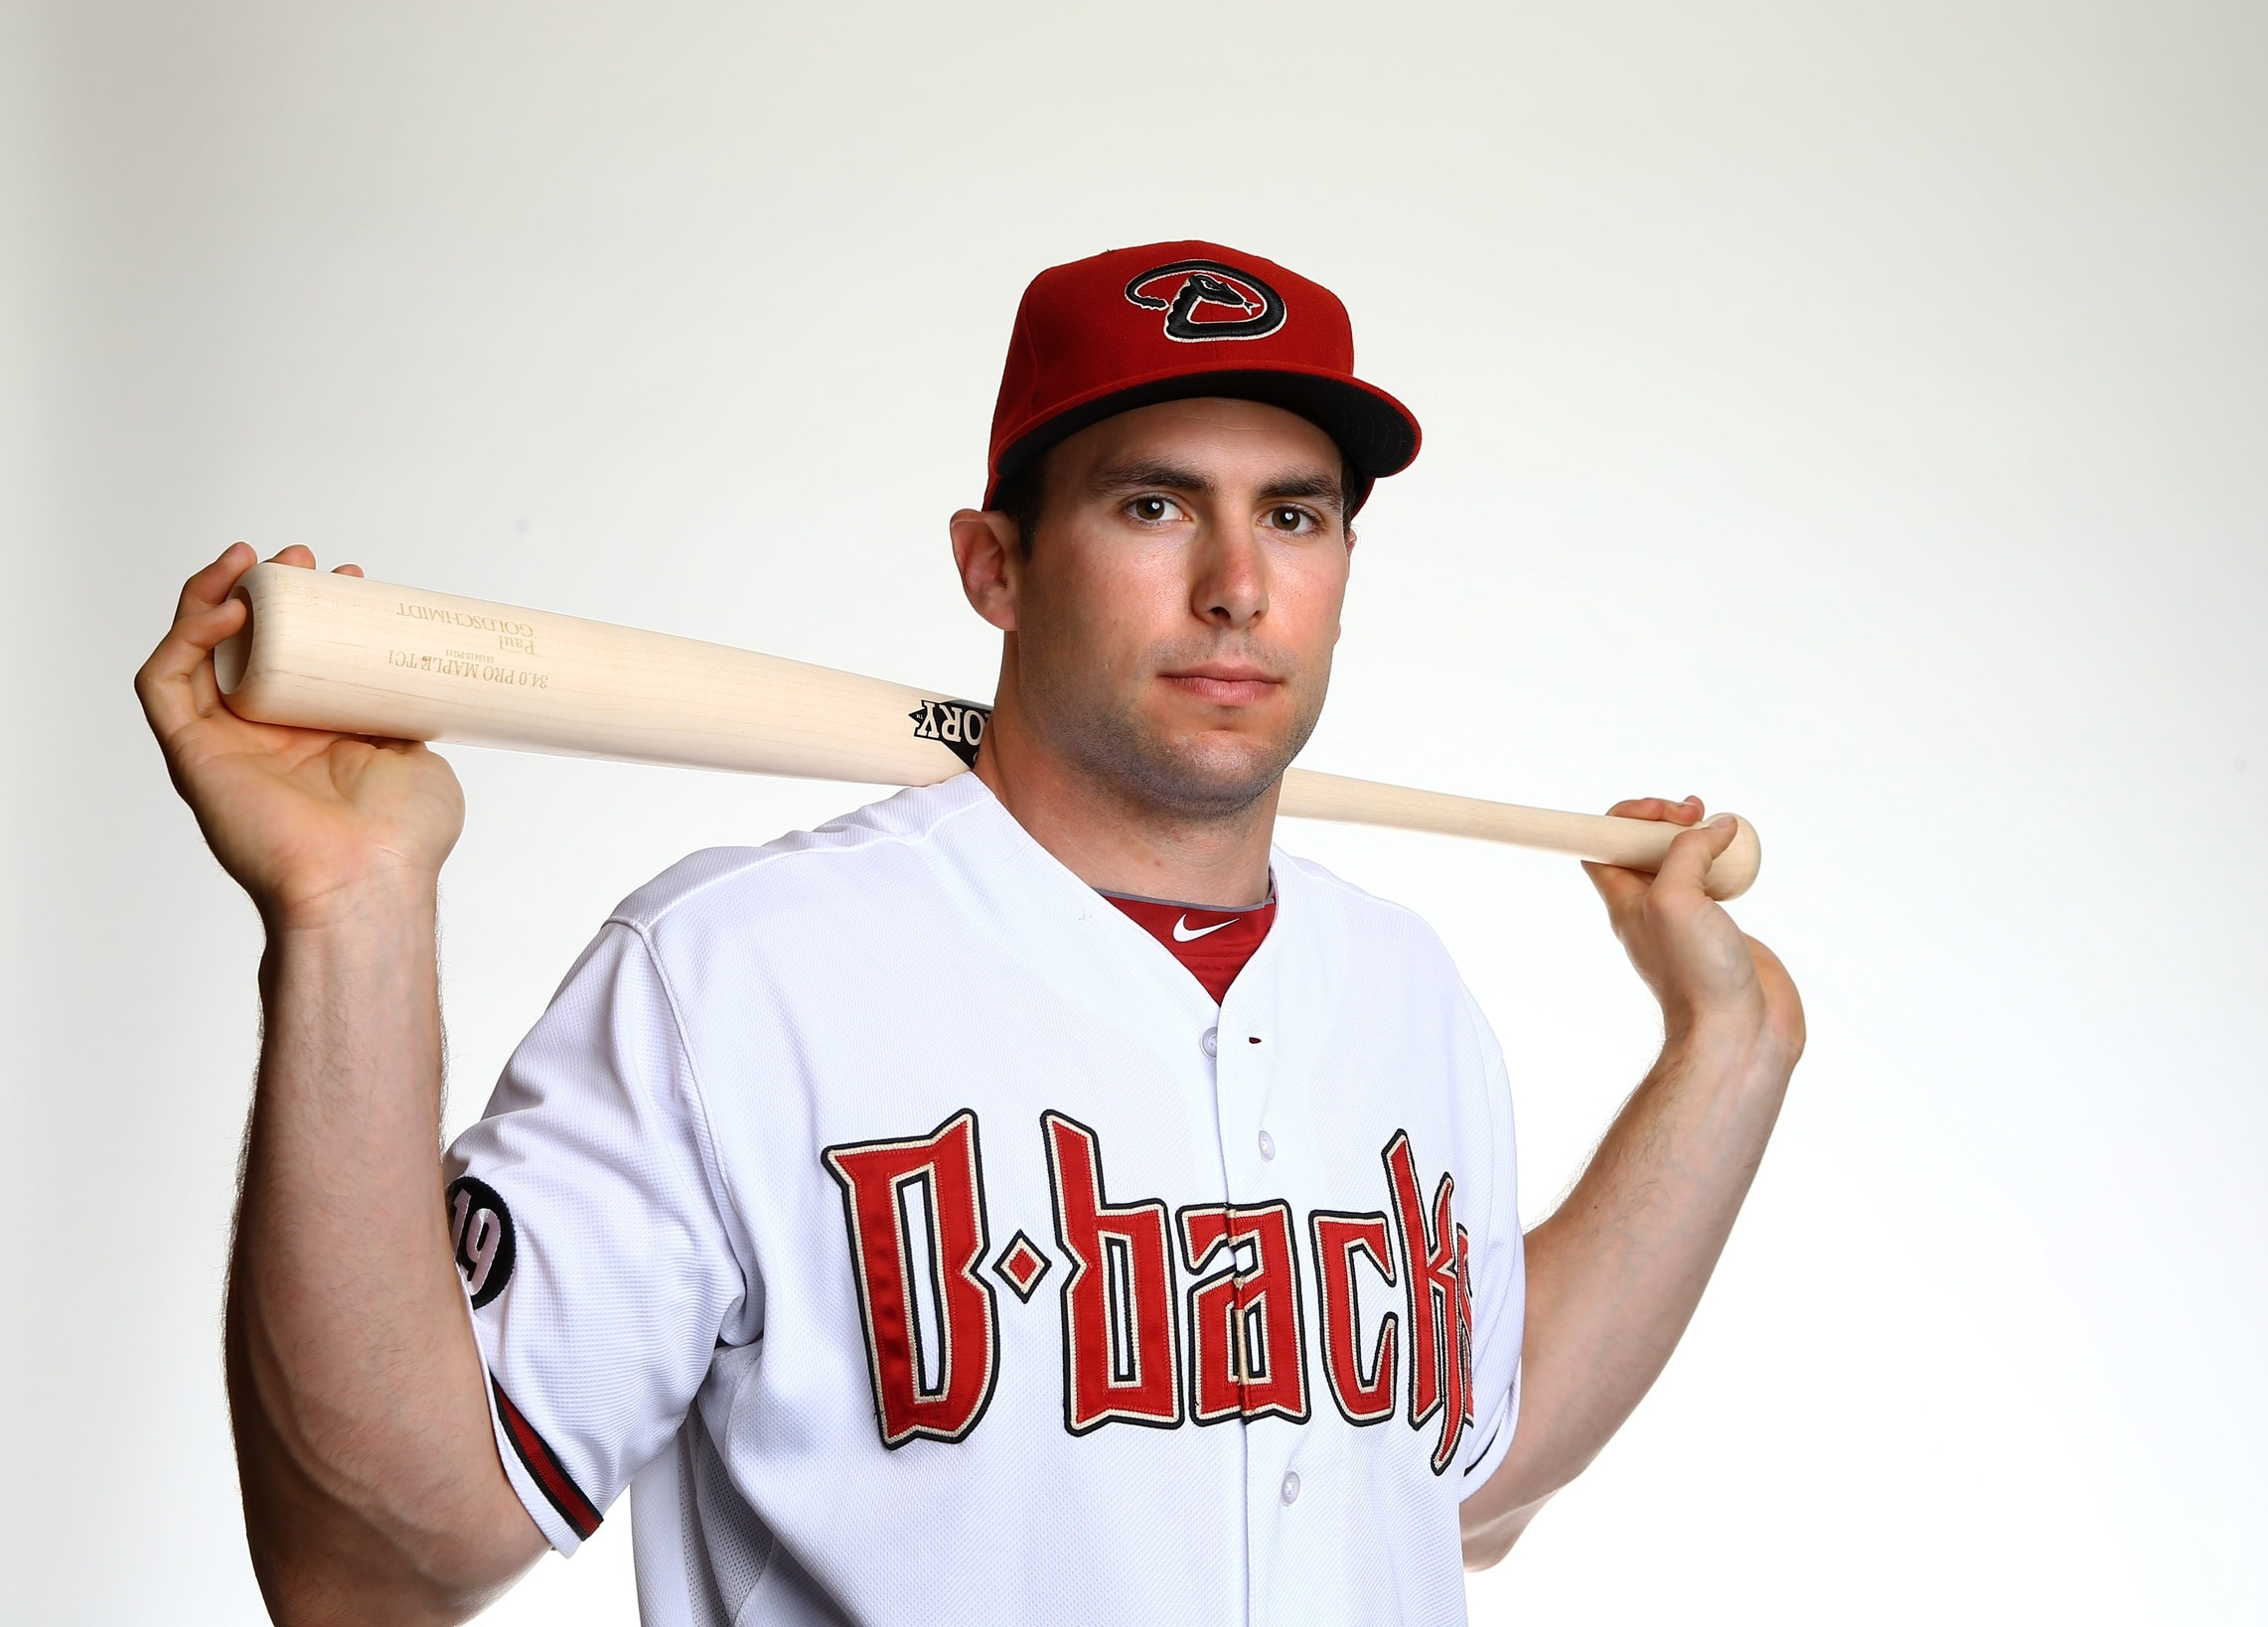 Arizona Diamondbacks 2014 Preview